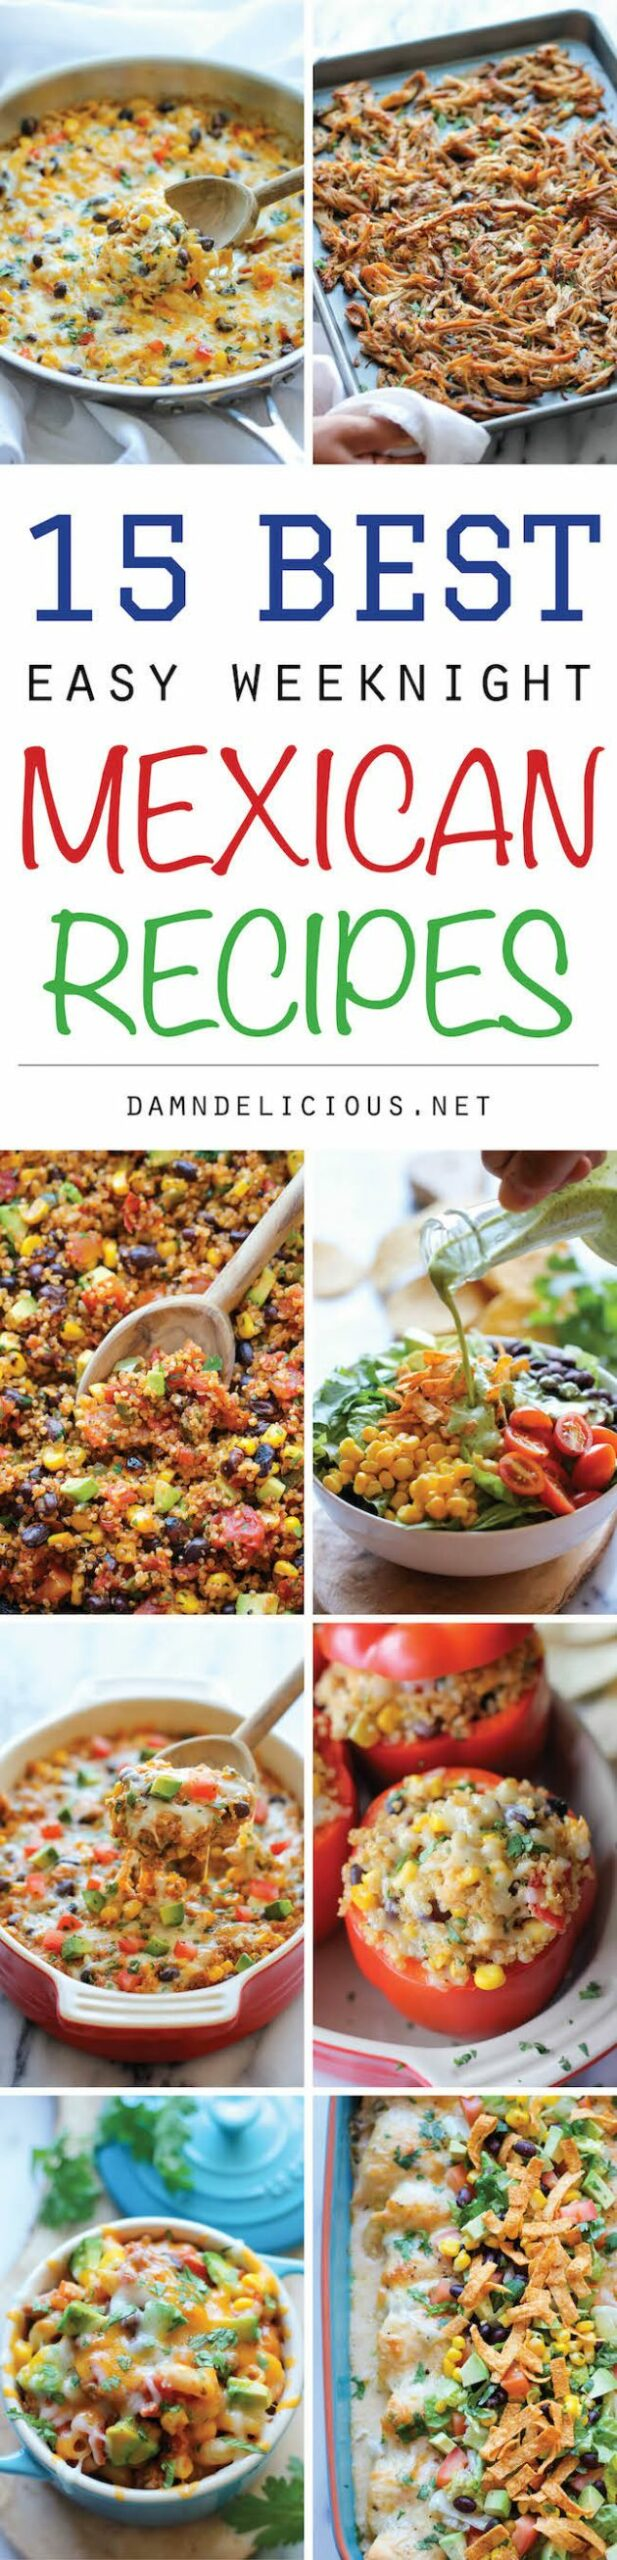 10 Best Easy Weeknight Mexican Recipes - Damn Delicious - Easy Recipes Mexican